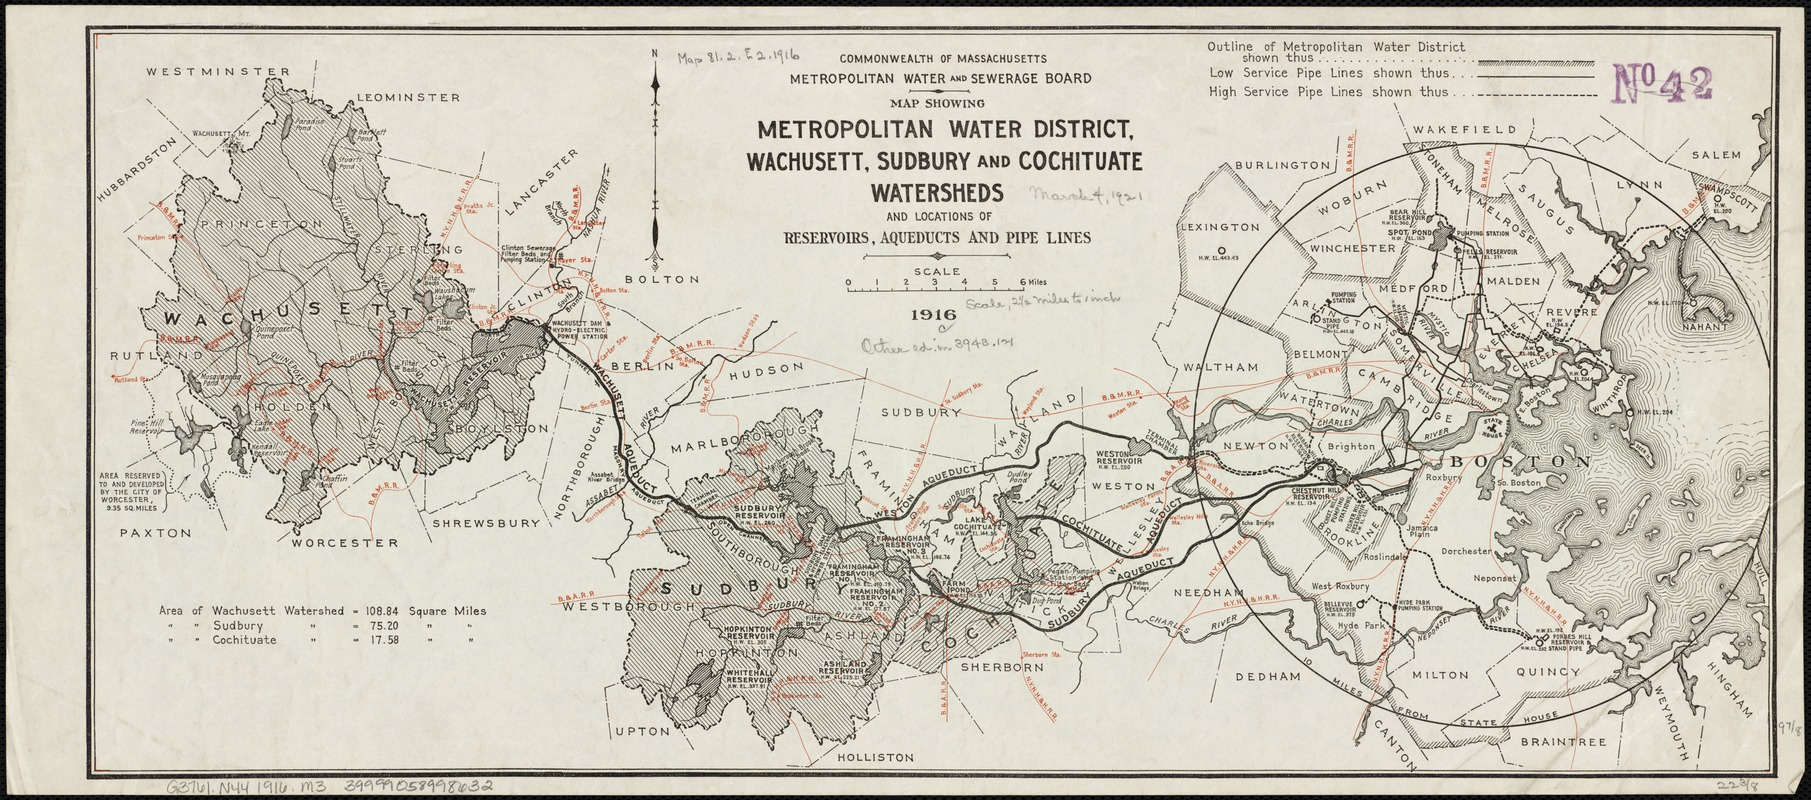 Map showing metropolitan water district, Wachusett, Sudbury and Cochituate watersheds and locations of reservoirs, aqueducts and lead pipes